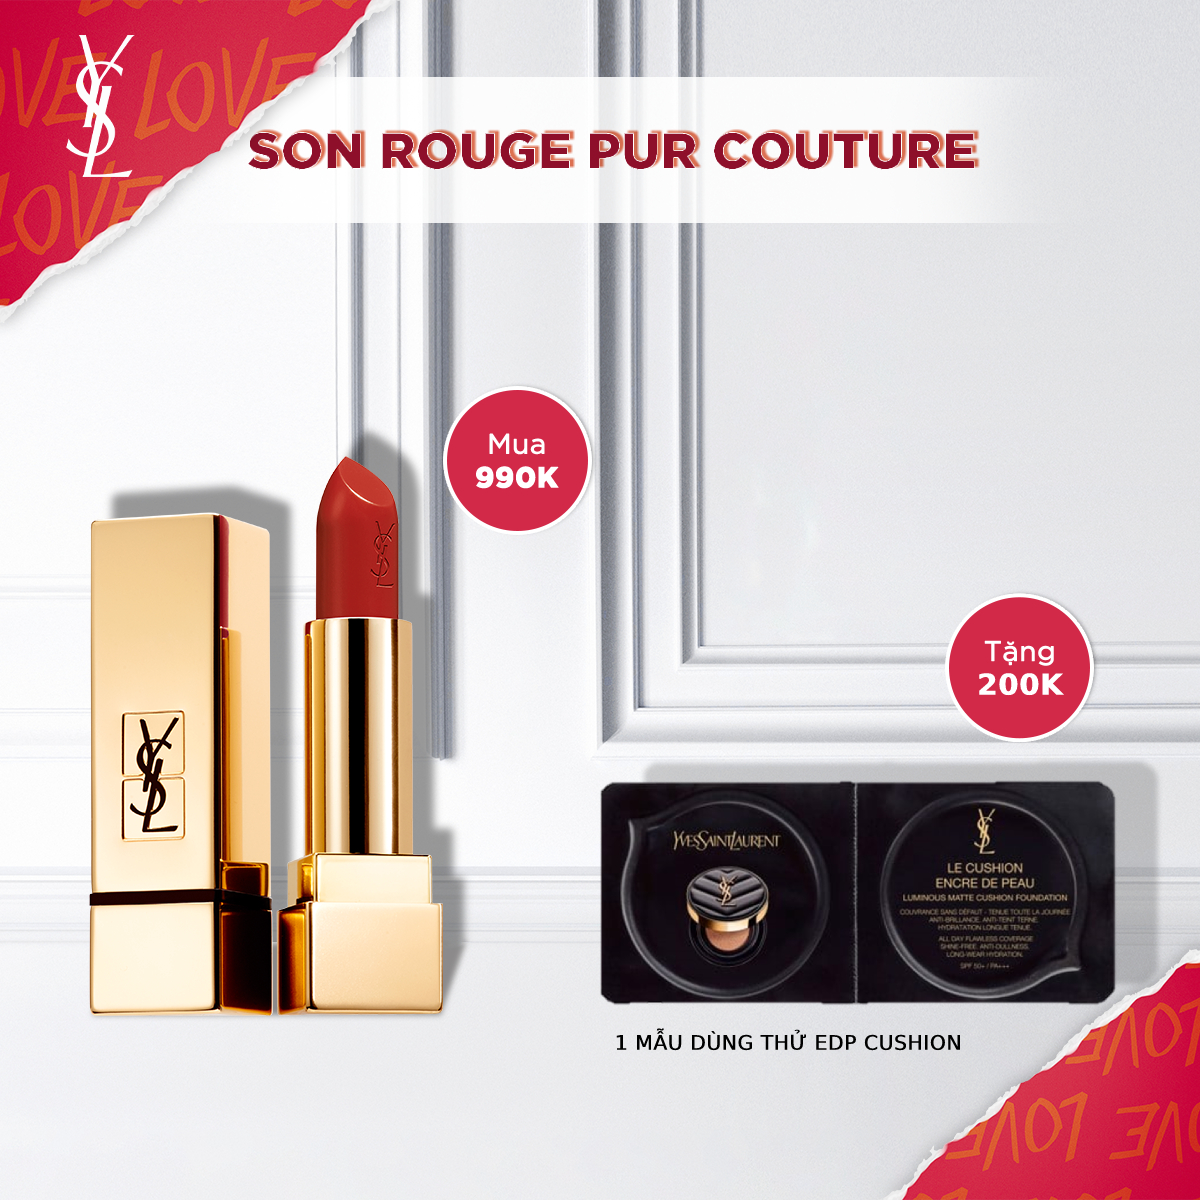 Bộ Son môi Rouge Pur Couture Milk Tea Collection